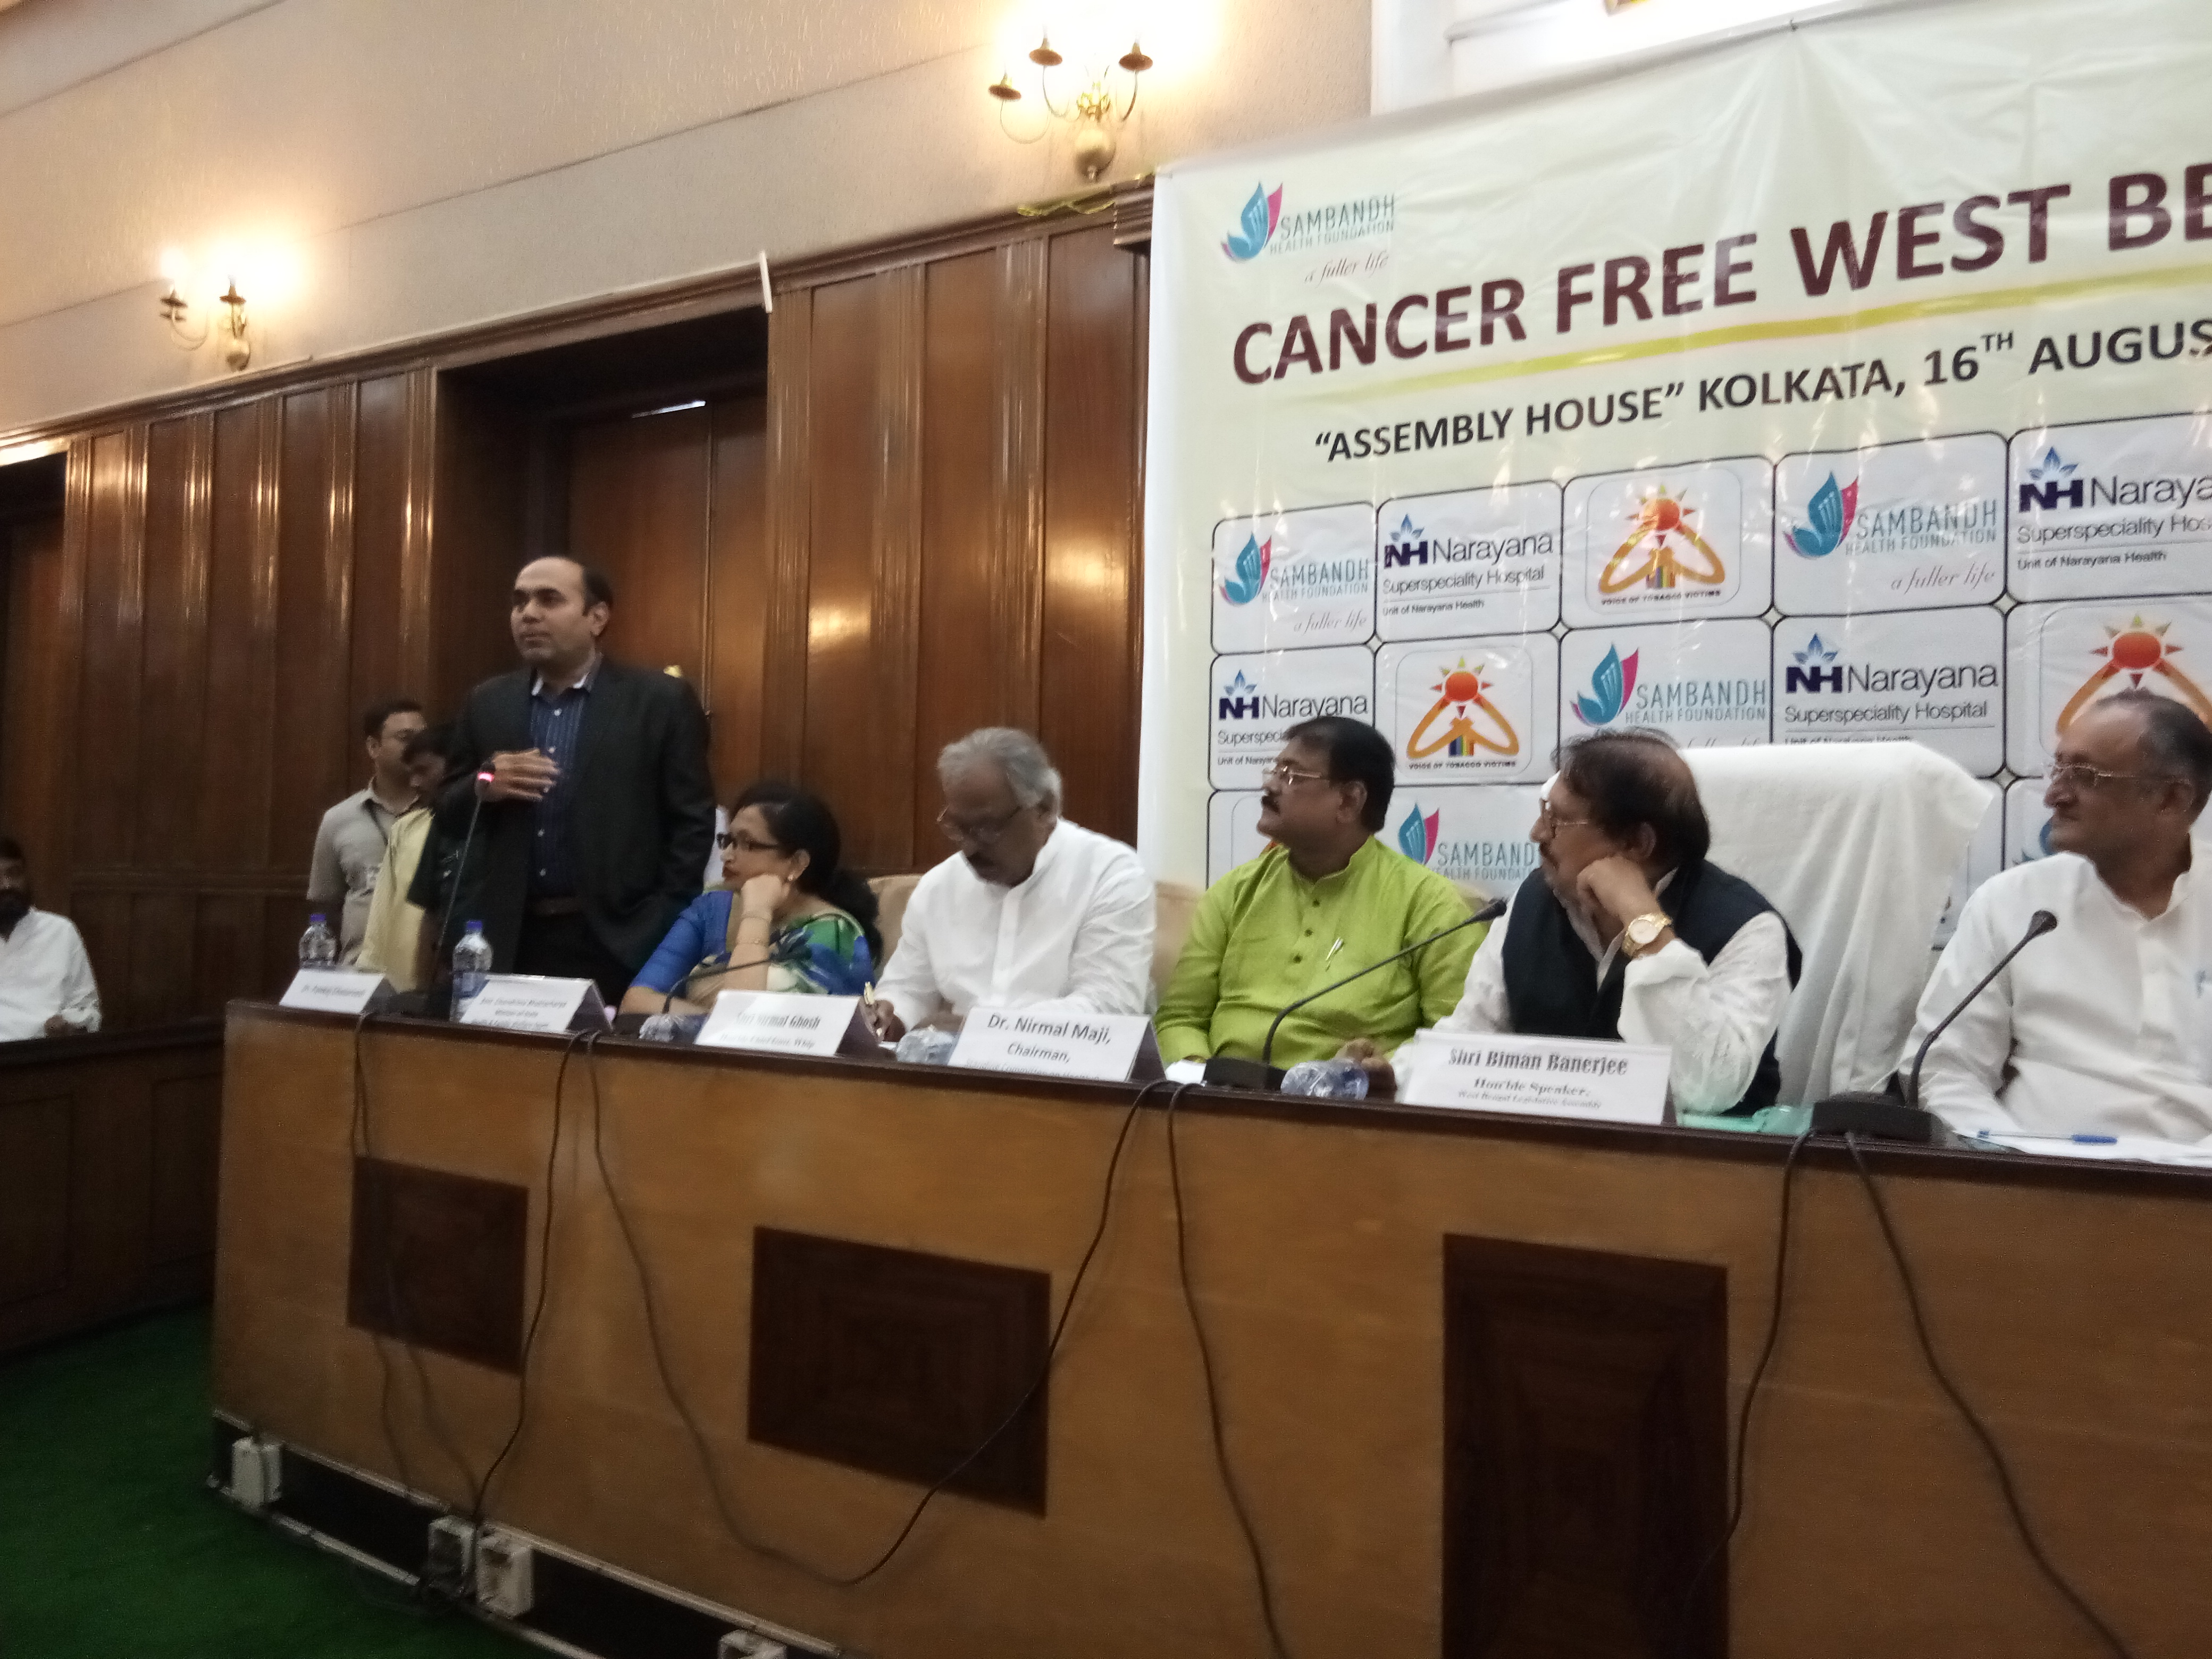 Cancer Free West Bengal program in Assembly